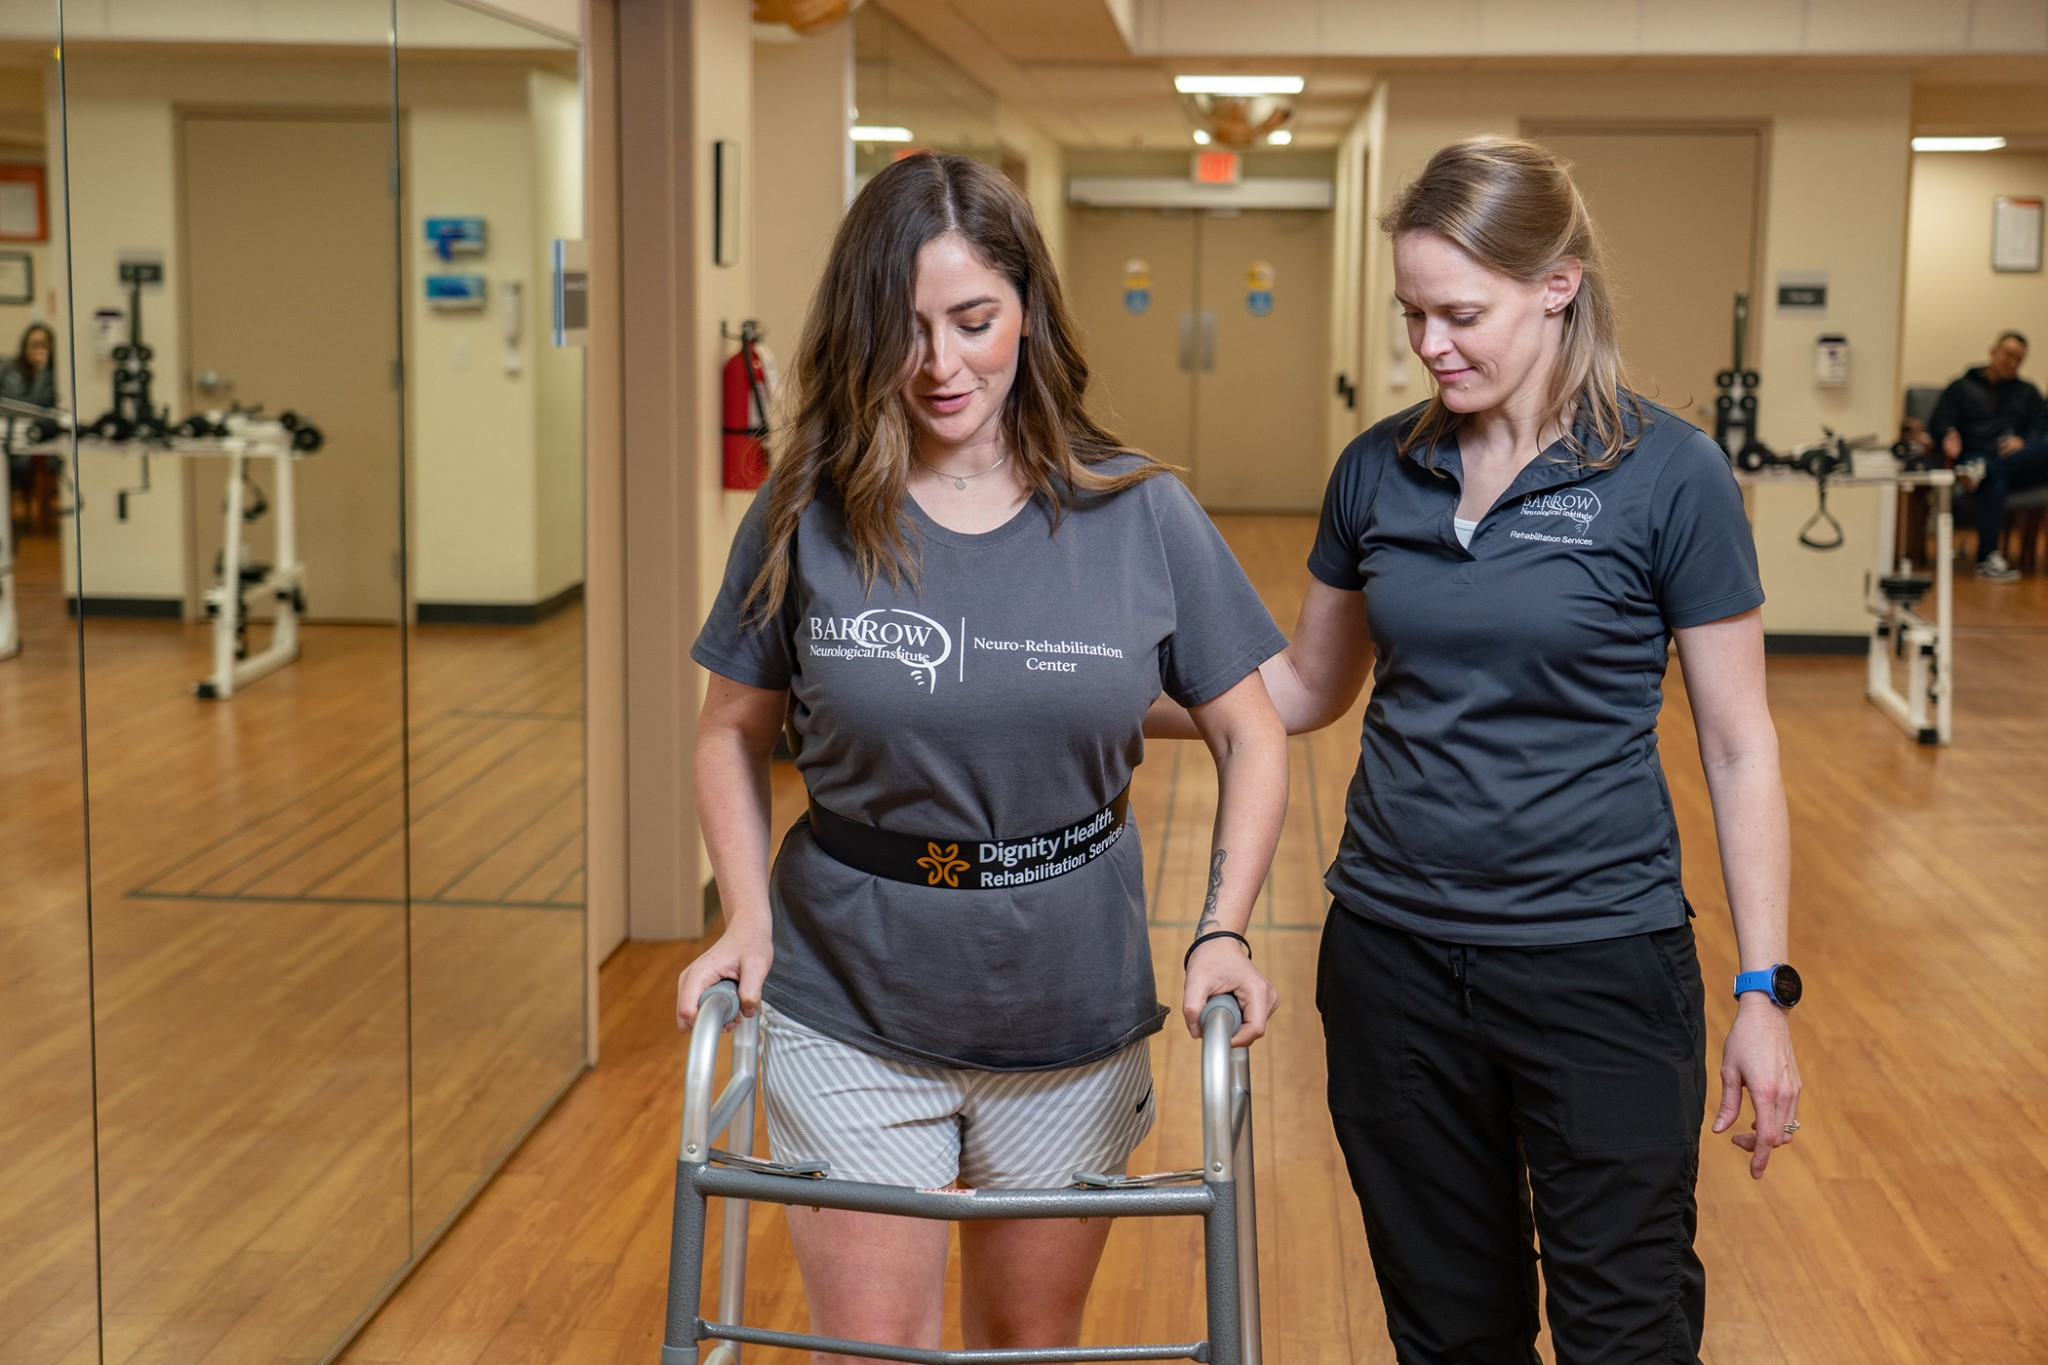 Therapist assisting patient to walk at the Neuro-Rehabilitation Center at Barrow.